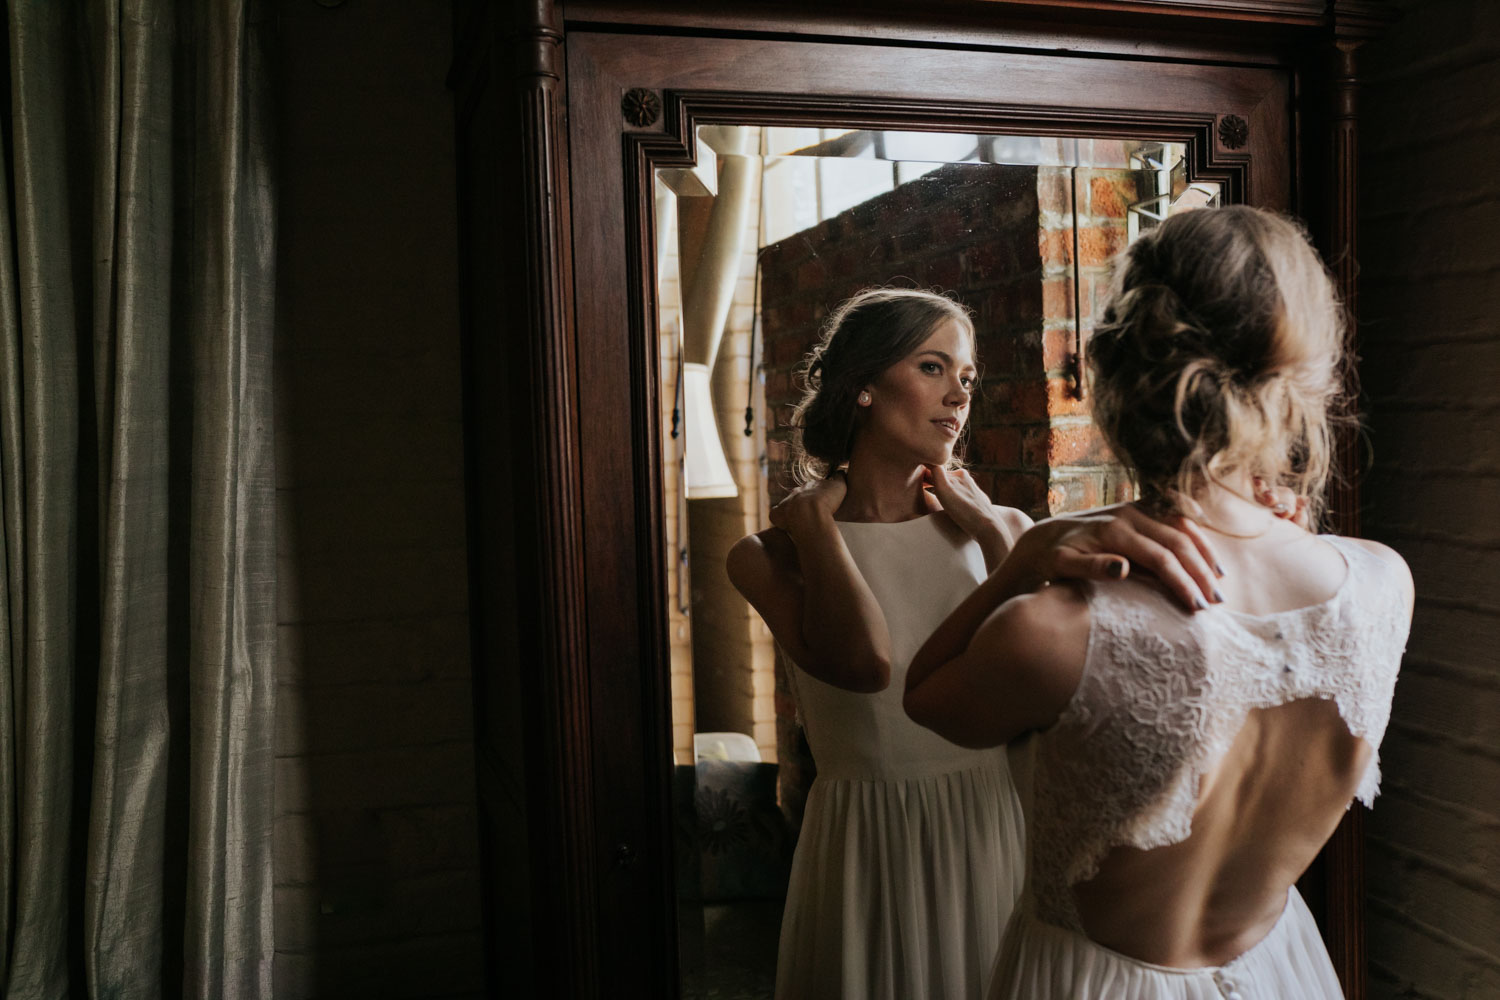 Bridal Portrait Wearing Lace Dress With Circle Cut Out In Back Looks In Antique Mirror